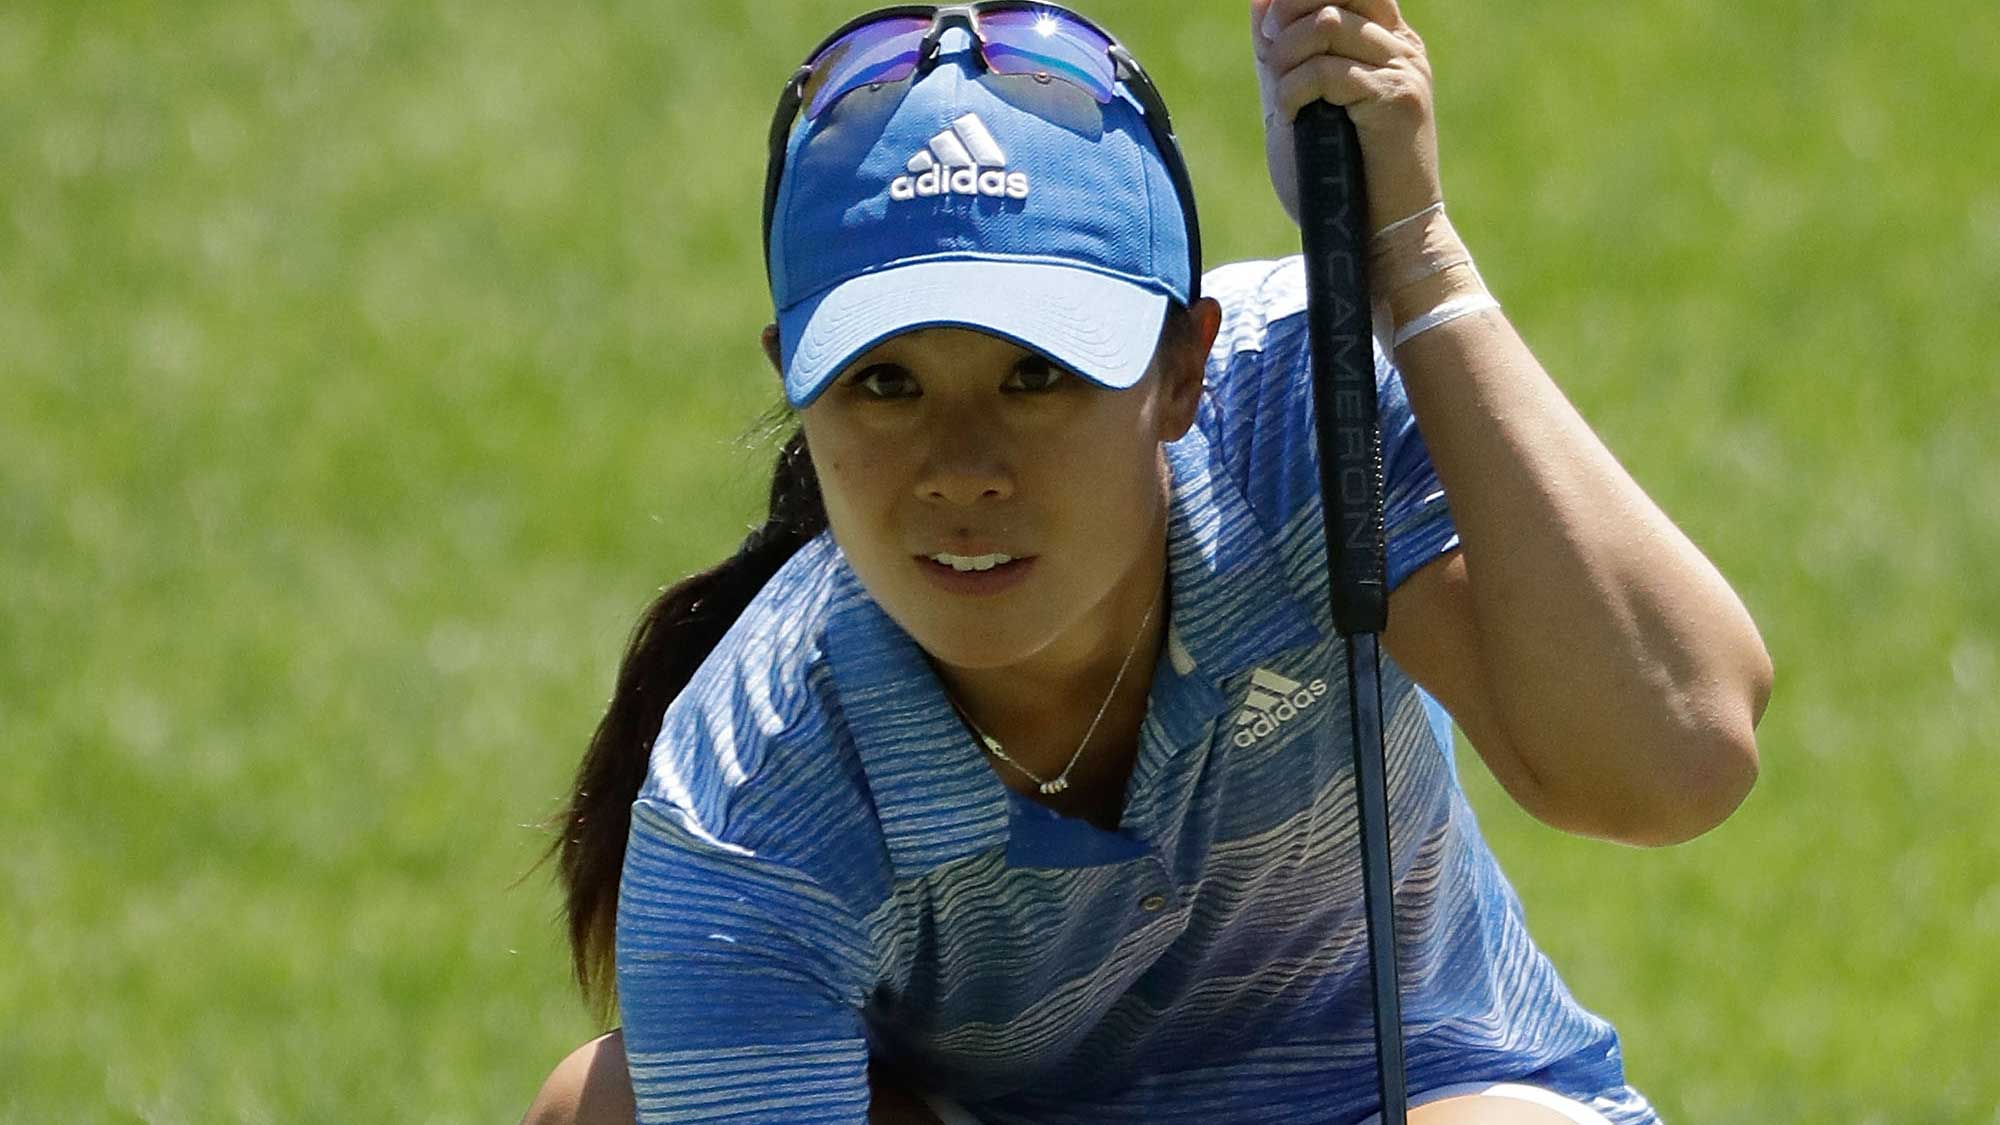 Danielle Kang lines up a putt on the fourth green during the final round of the 2017 KPMG PGA Championship